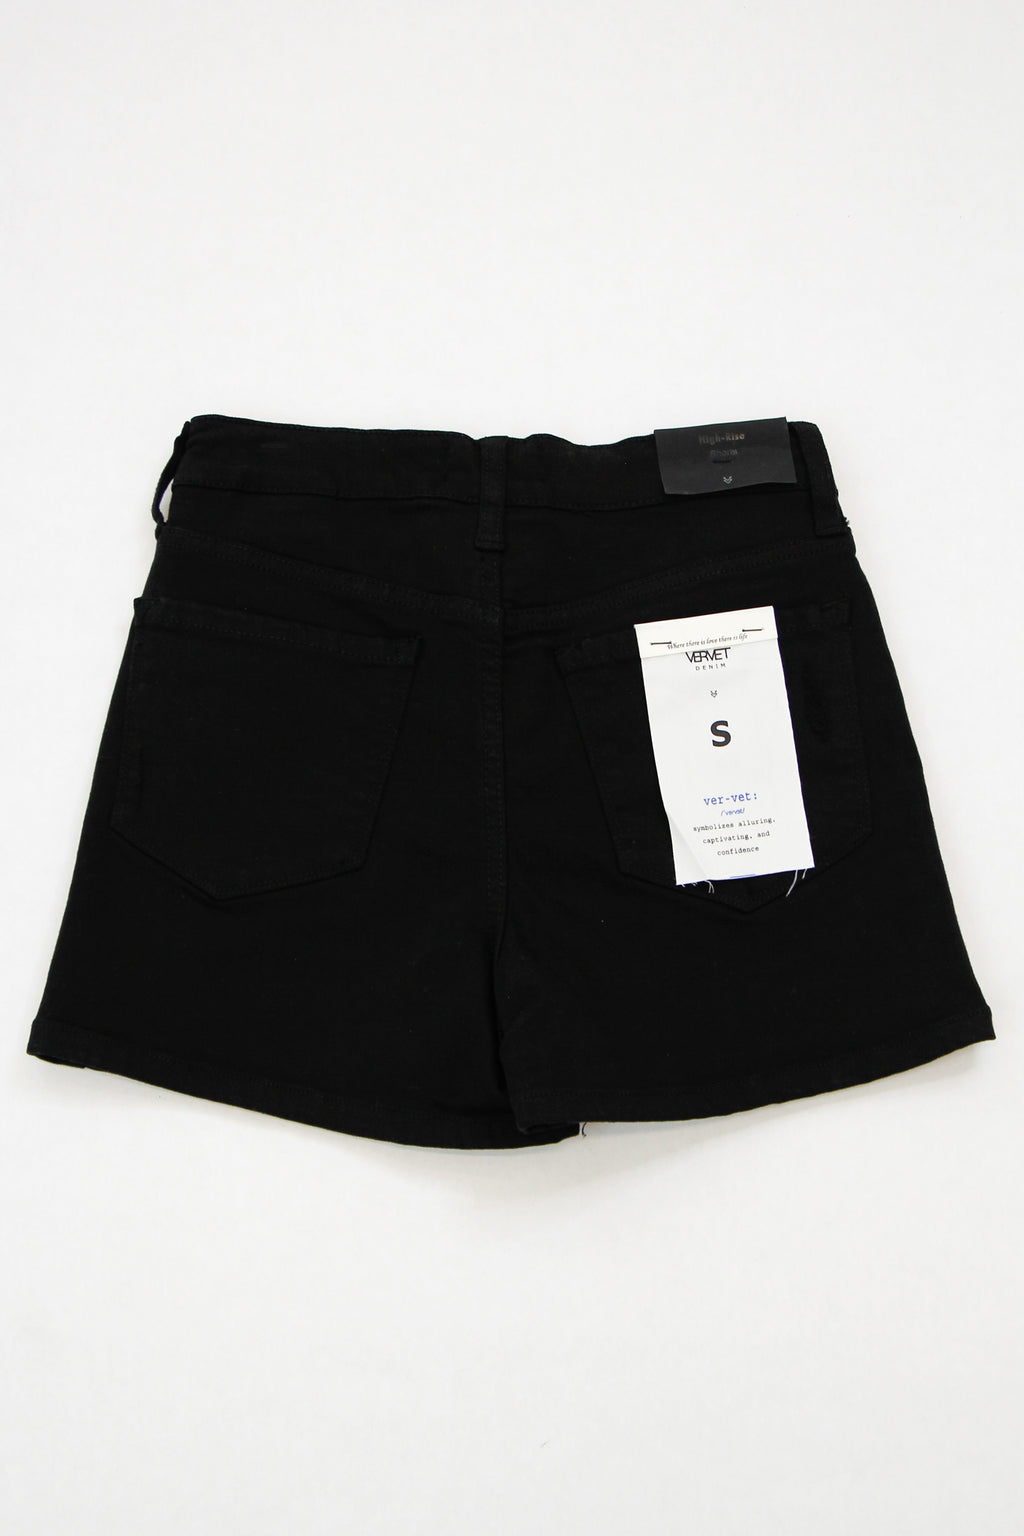 Vervet Denim Shorts - Jet Black